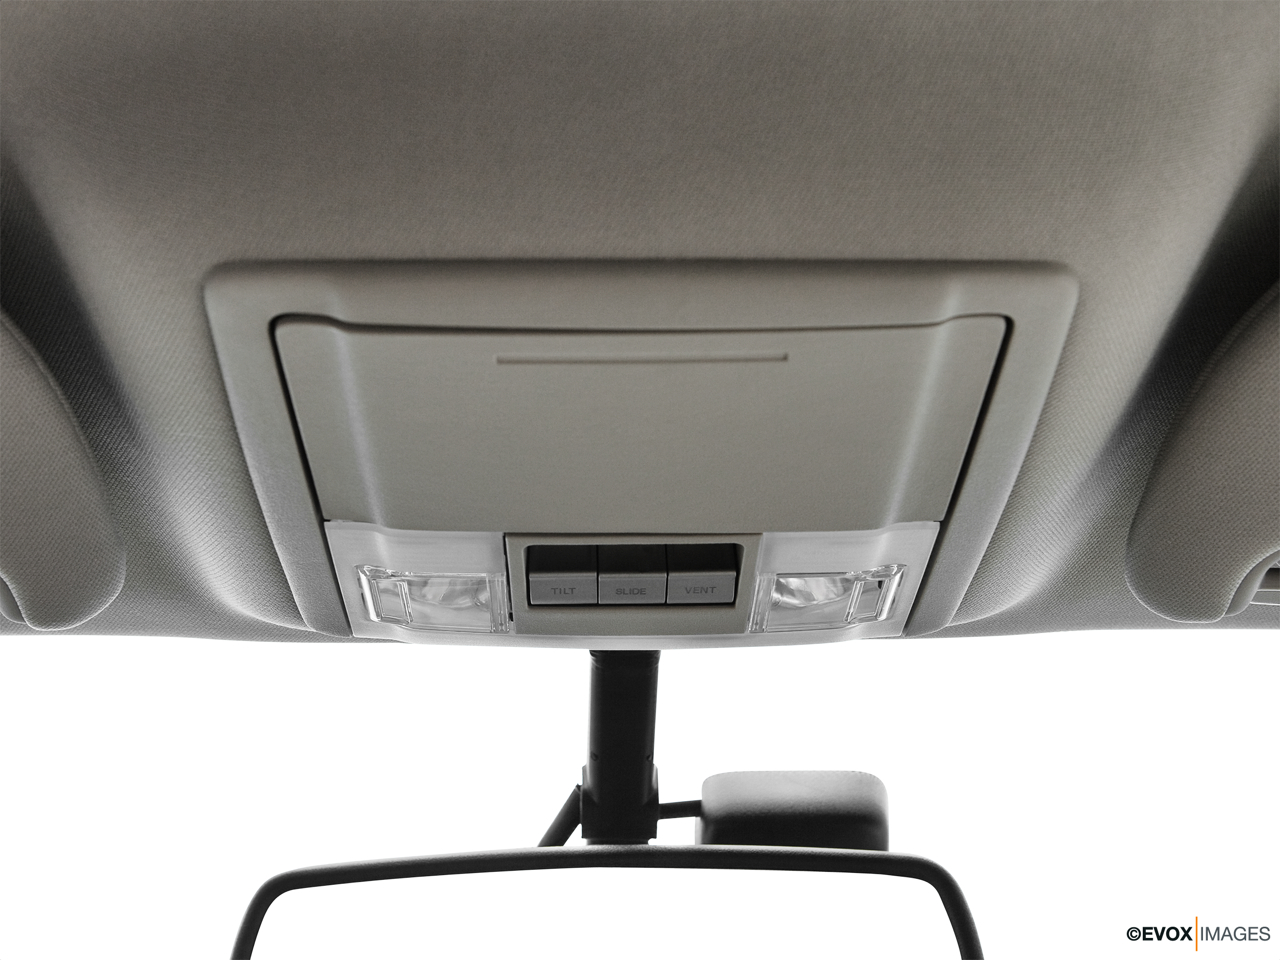 2010 Lincoln Navigator Base Courtesy lamps/ceiling controls.